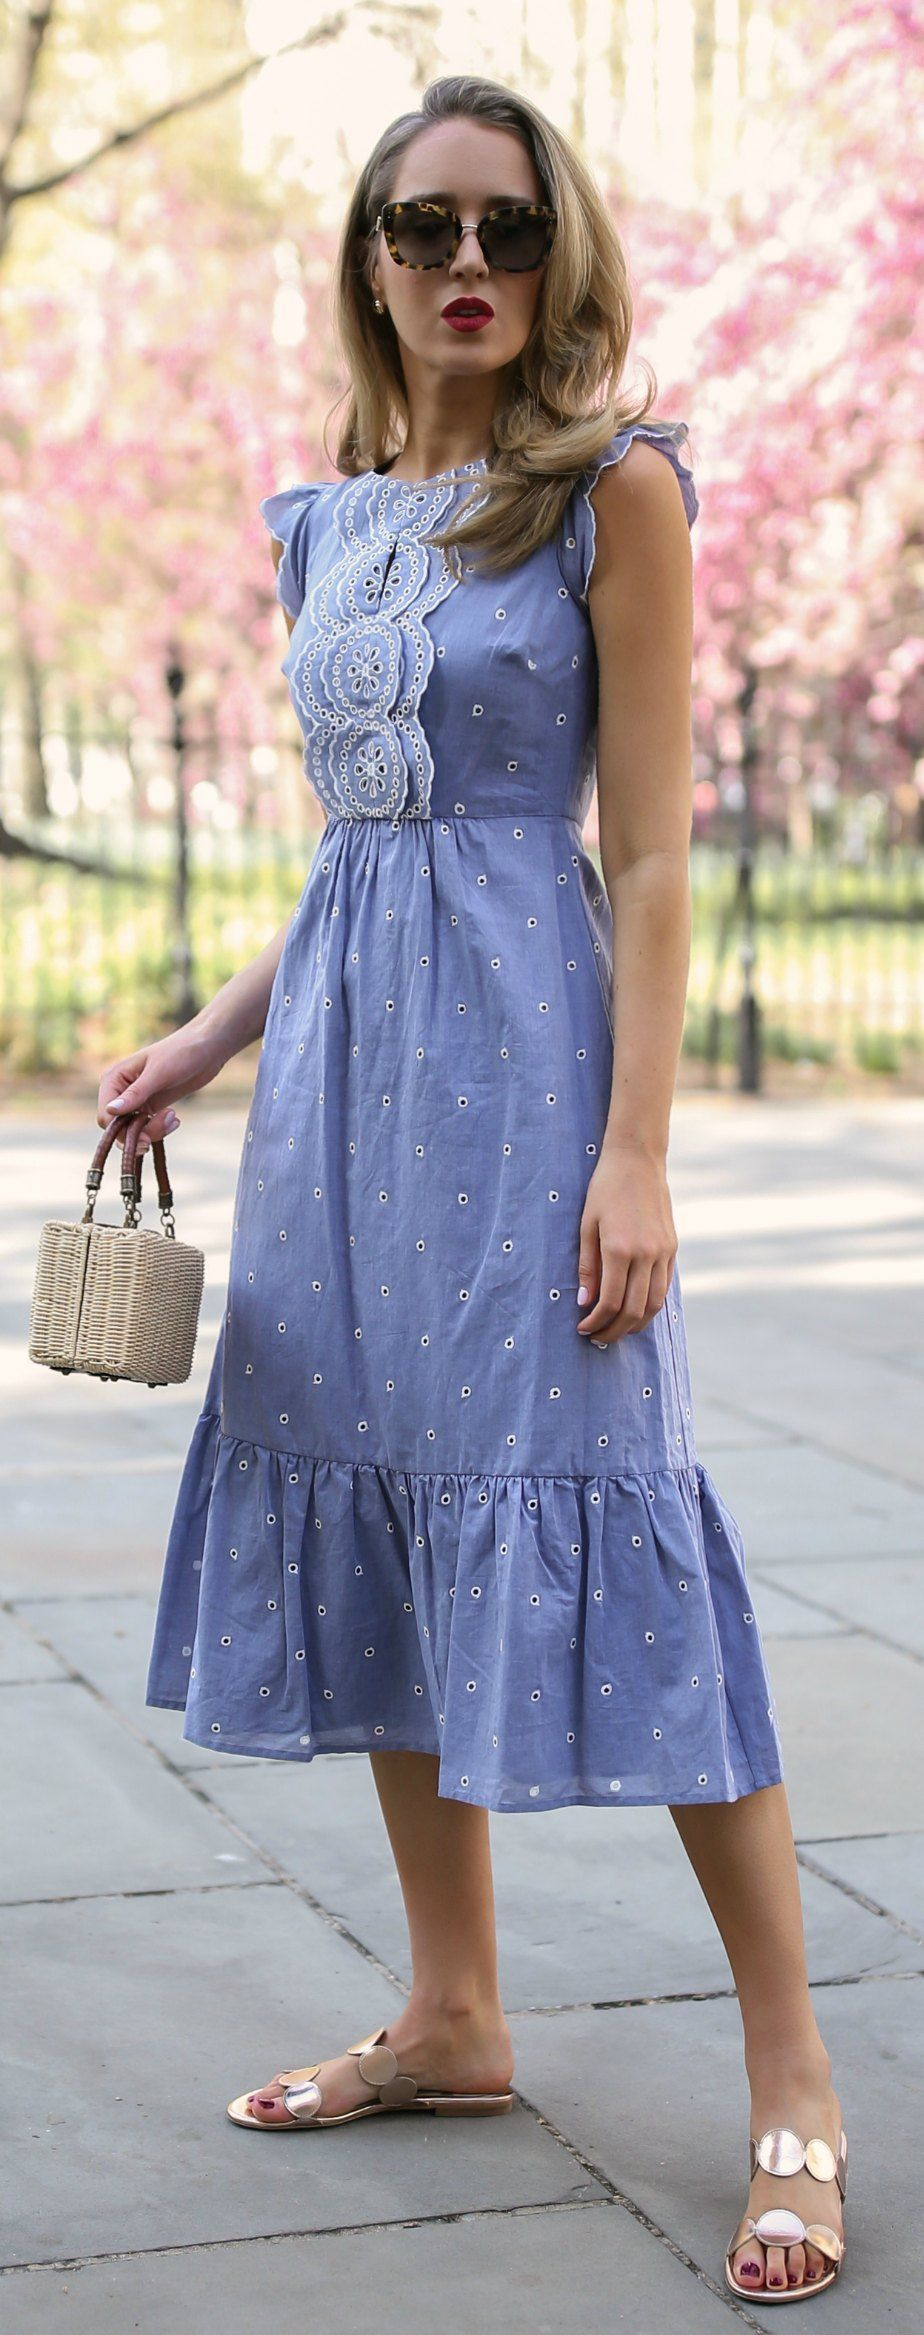 30 Dresses In 30 Days Garden Party Light Blue Contrast Broderie Anglaise Embroidery Midi Dress Light Wi Trendy Party Dresses Modest Dresses Summer Dresses